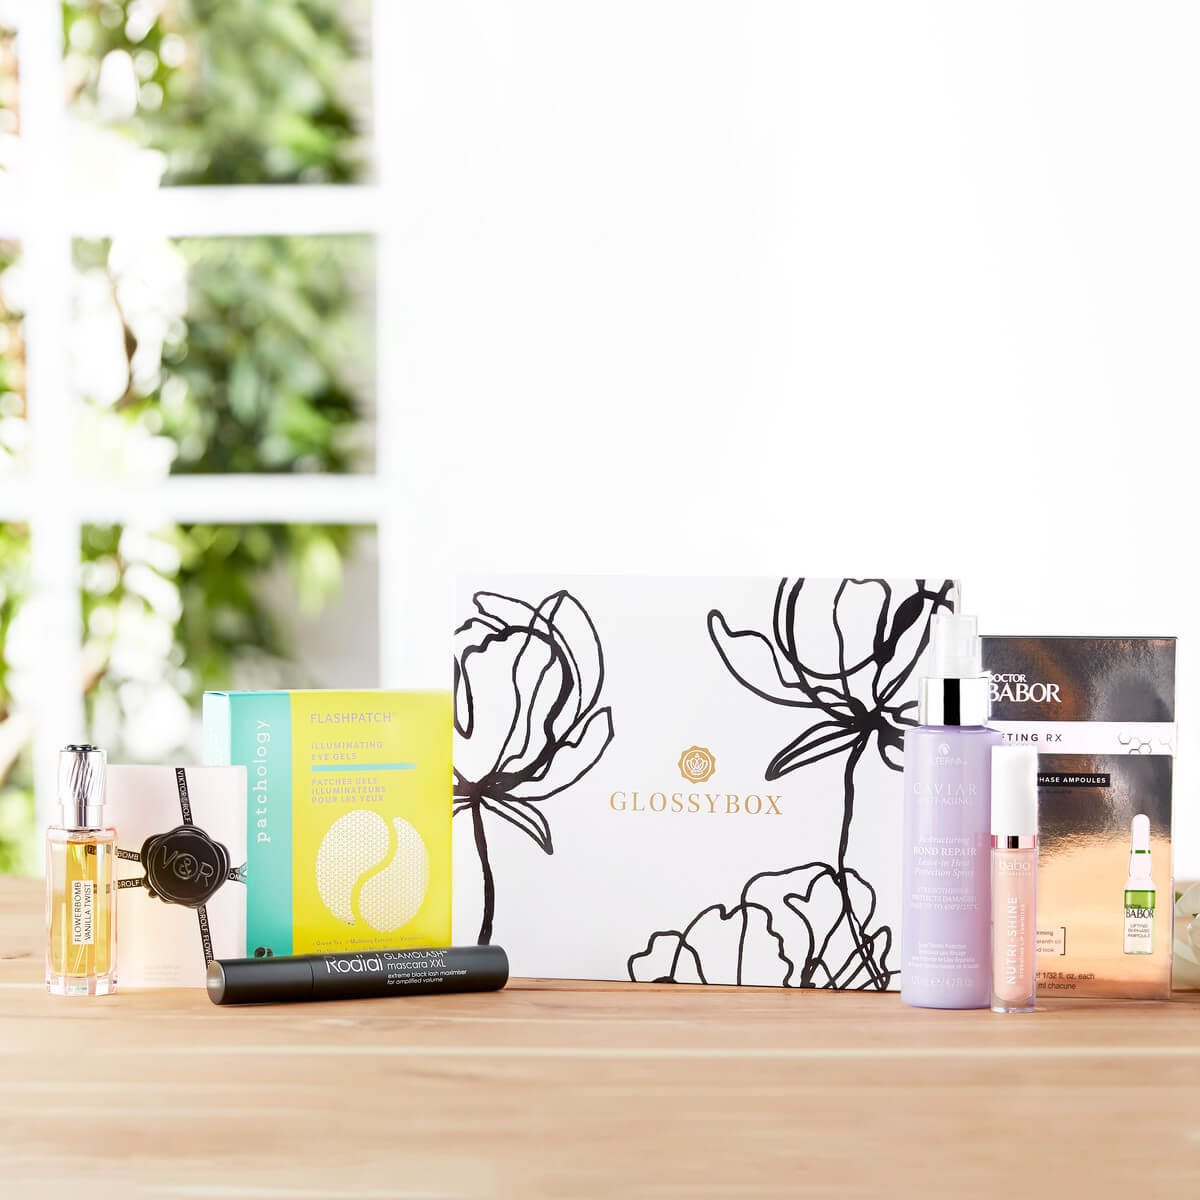 Glossy Box coupon: GLOSSYBOX MOTHER'S DAY LIMITED EDITION BOX